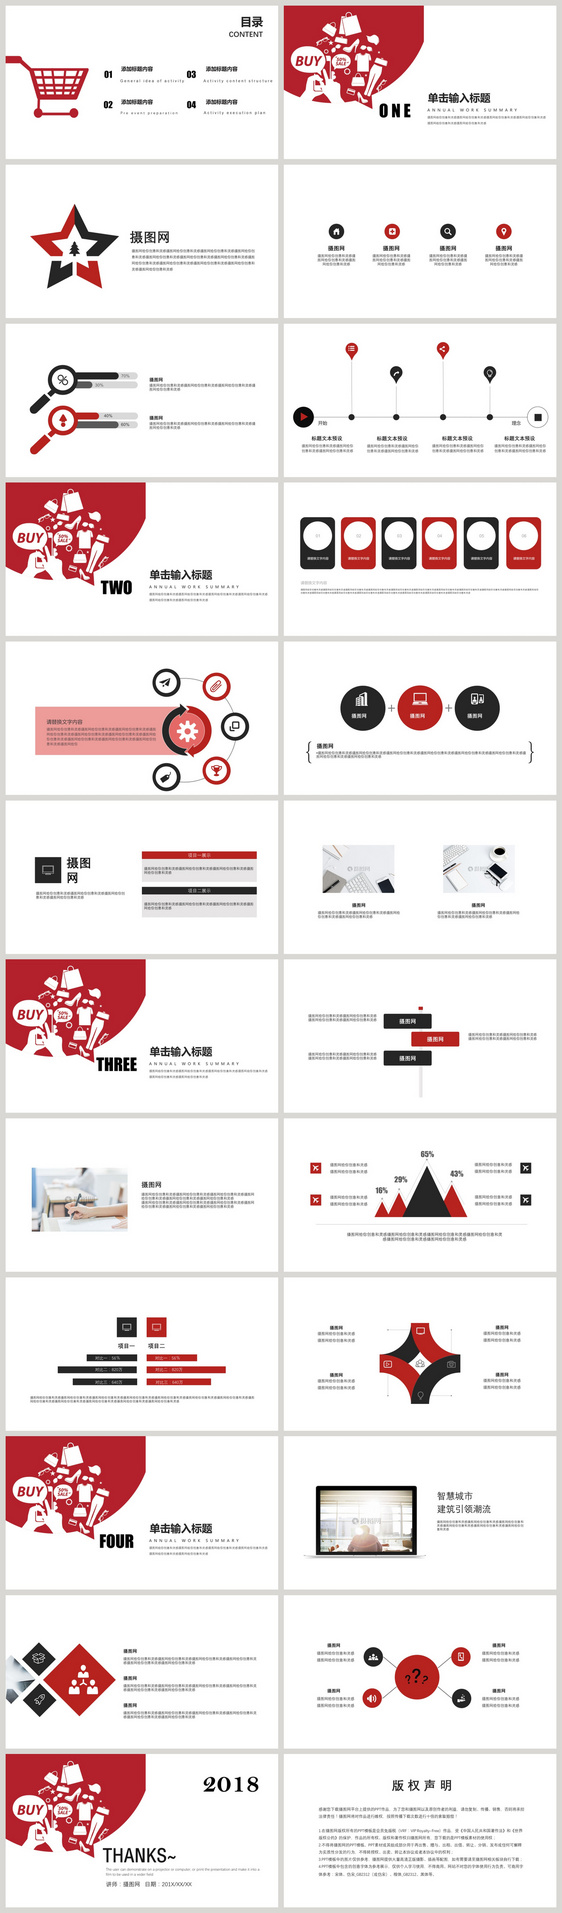 Flat Wind Marketing Plan Ppt Template Powerpoint 400113580 M Lovepik Com